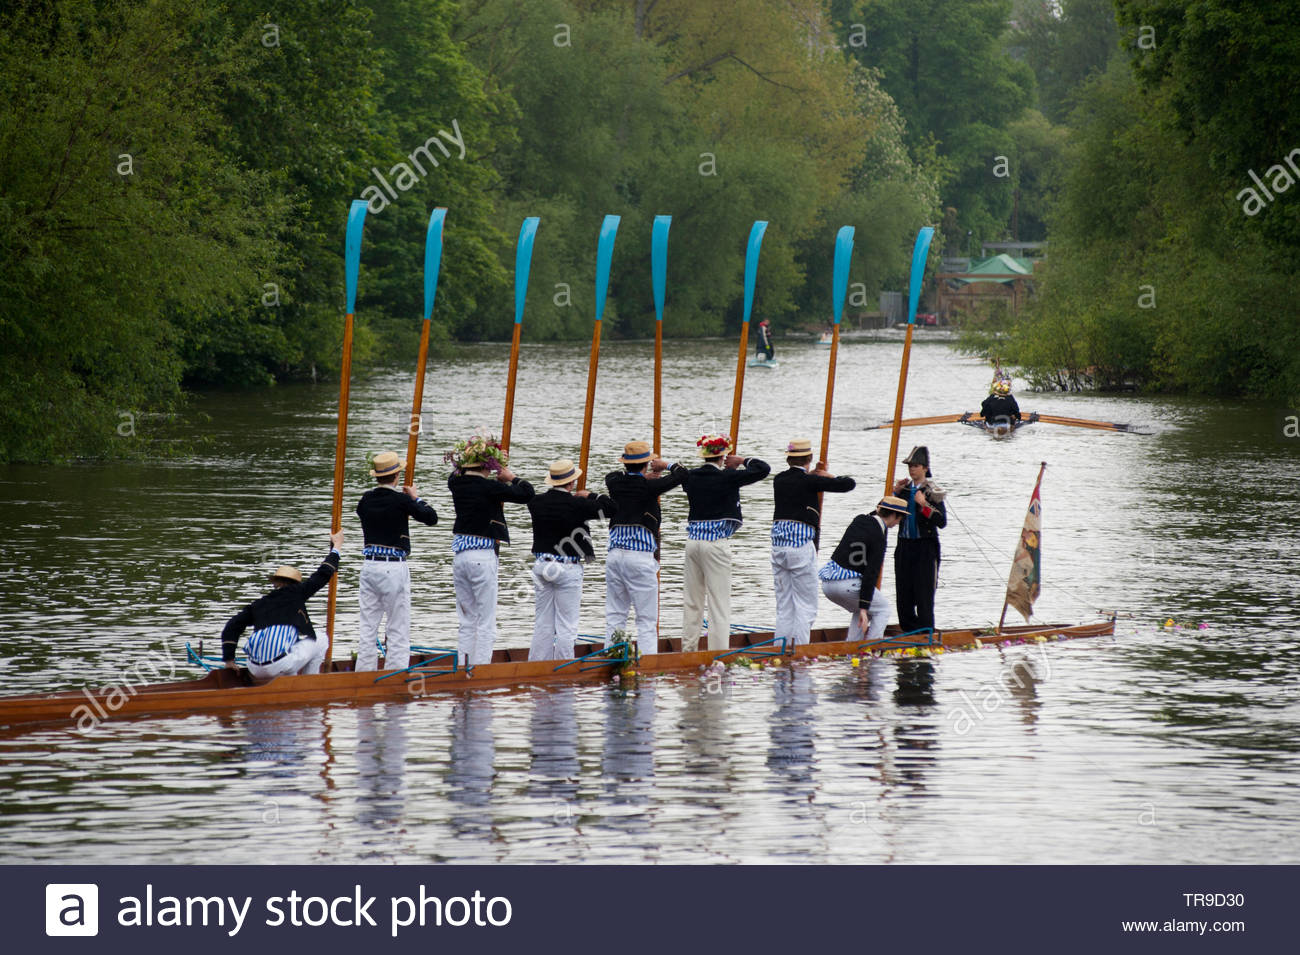 Eton College schoolboys rehearse the annual Procession of Boats ceremony on the River Thames. - Stock Image